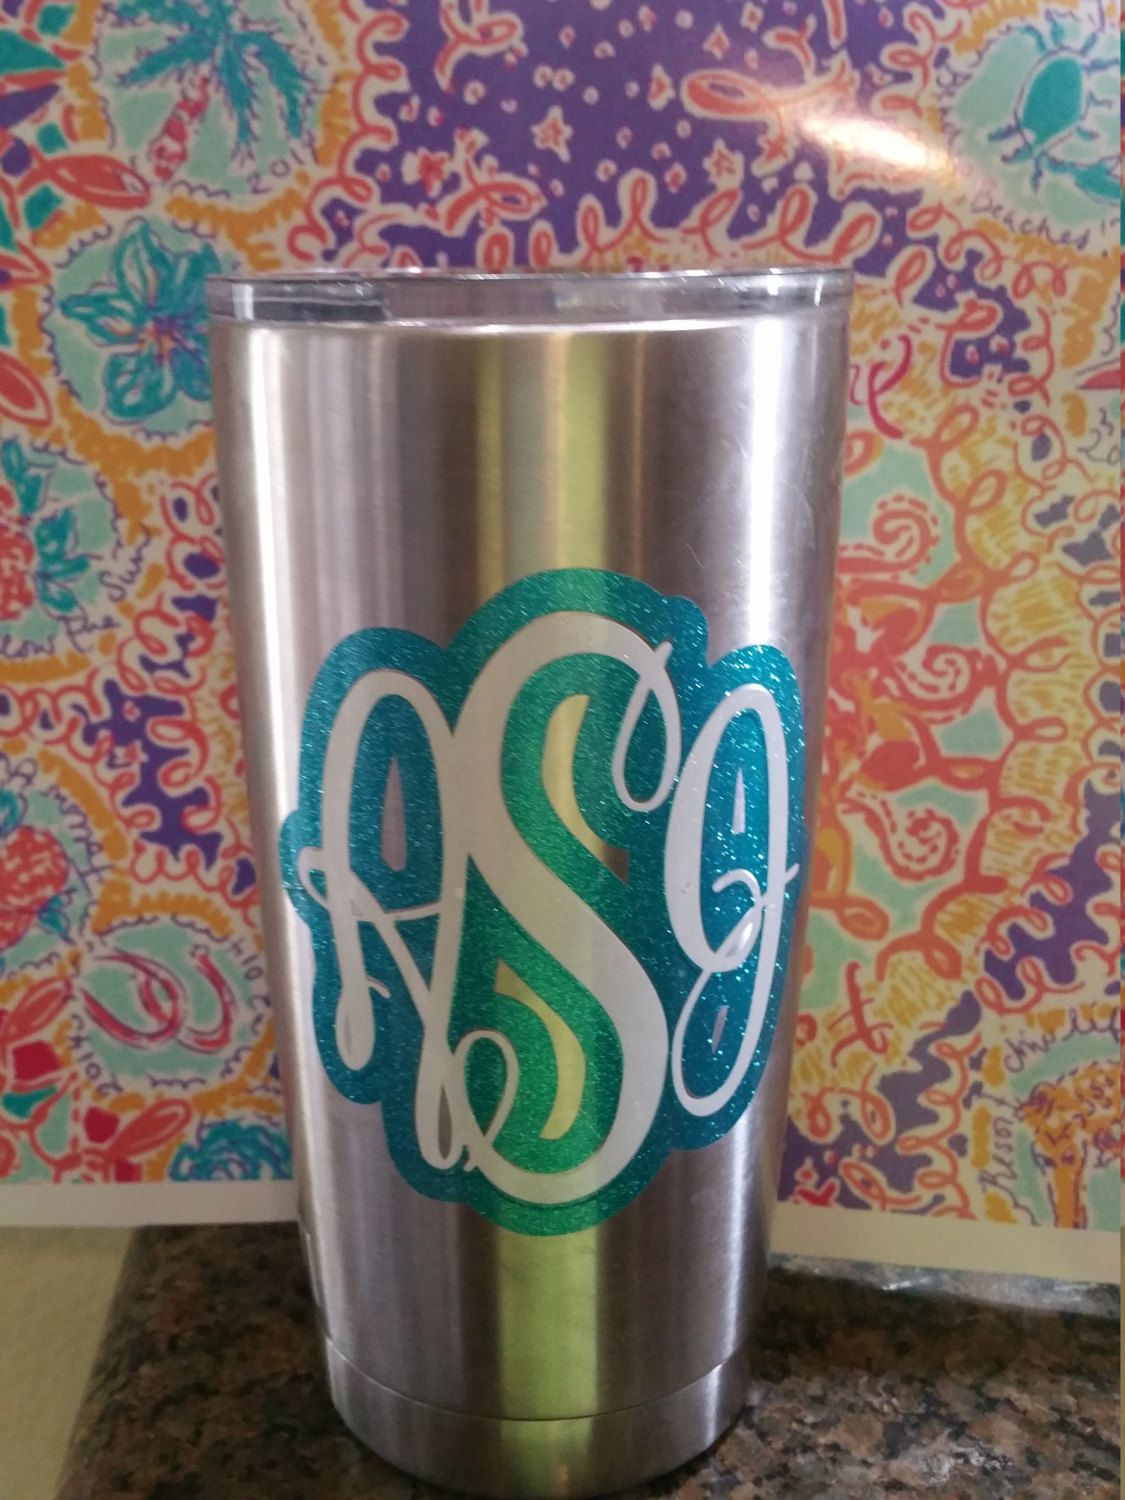 Yeti Cup Monograms Names logos - pinned by pin4etsy.com